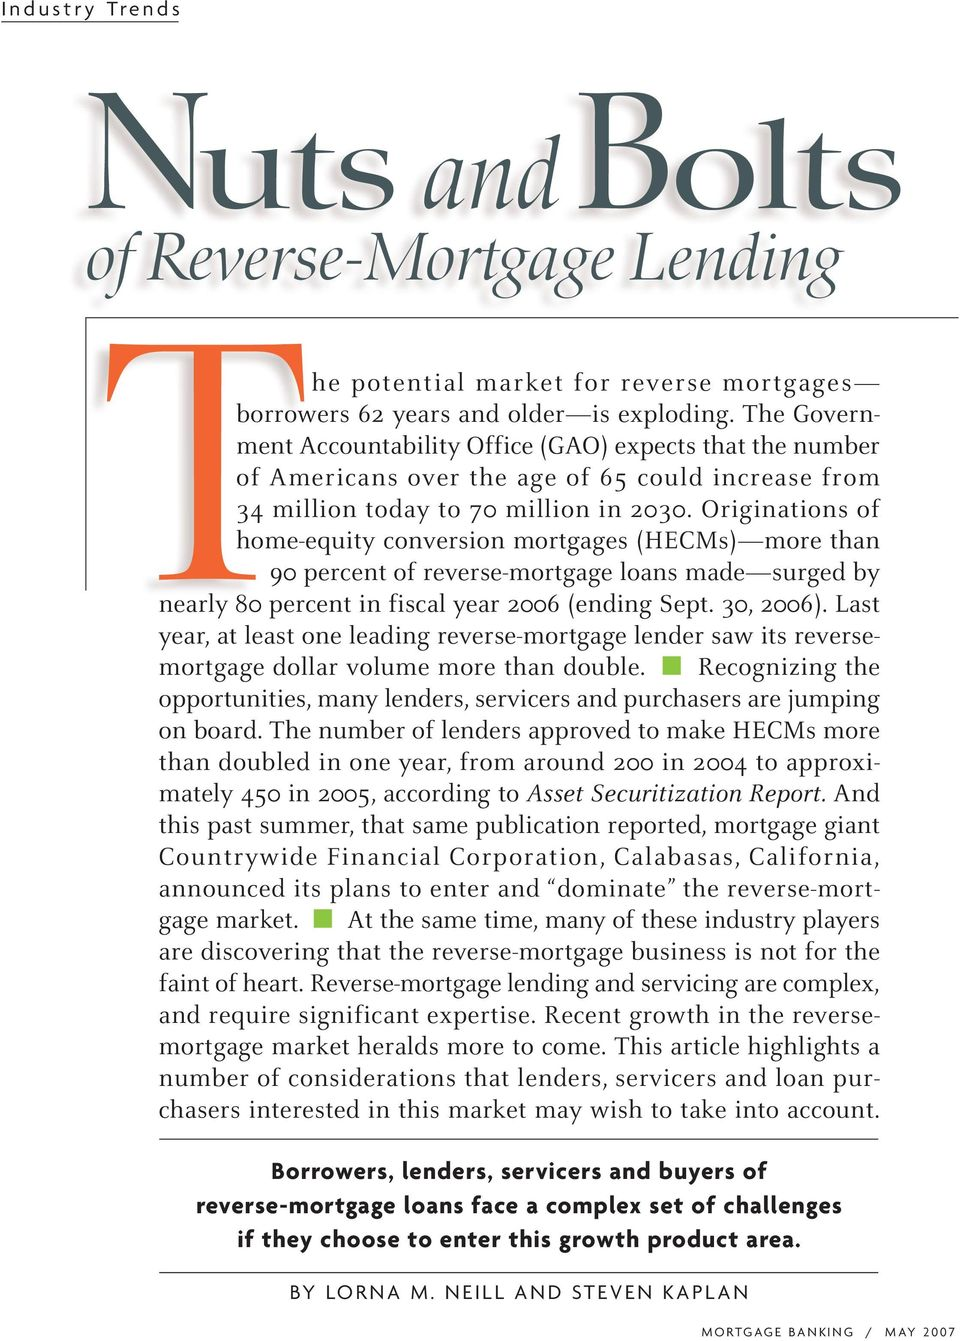 Originations of home-equity conversion mortgages (HECMs) more than 90 percent of reverse-mortgage loans made surged by nearly 80 percent in fiscal year 2006 (ending Sept. 30, 2006).